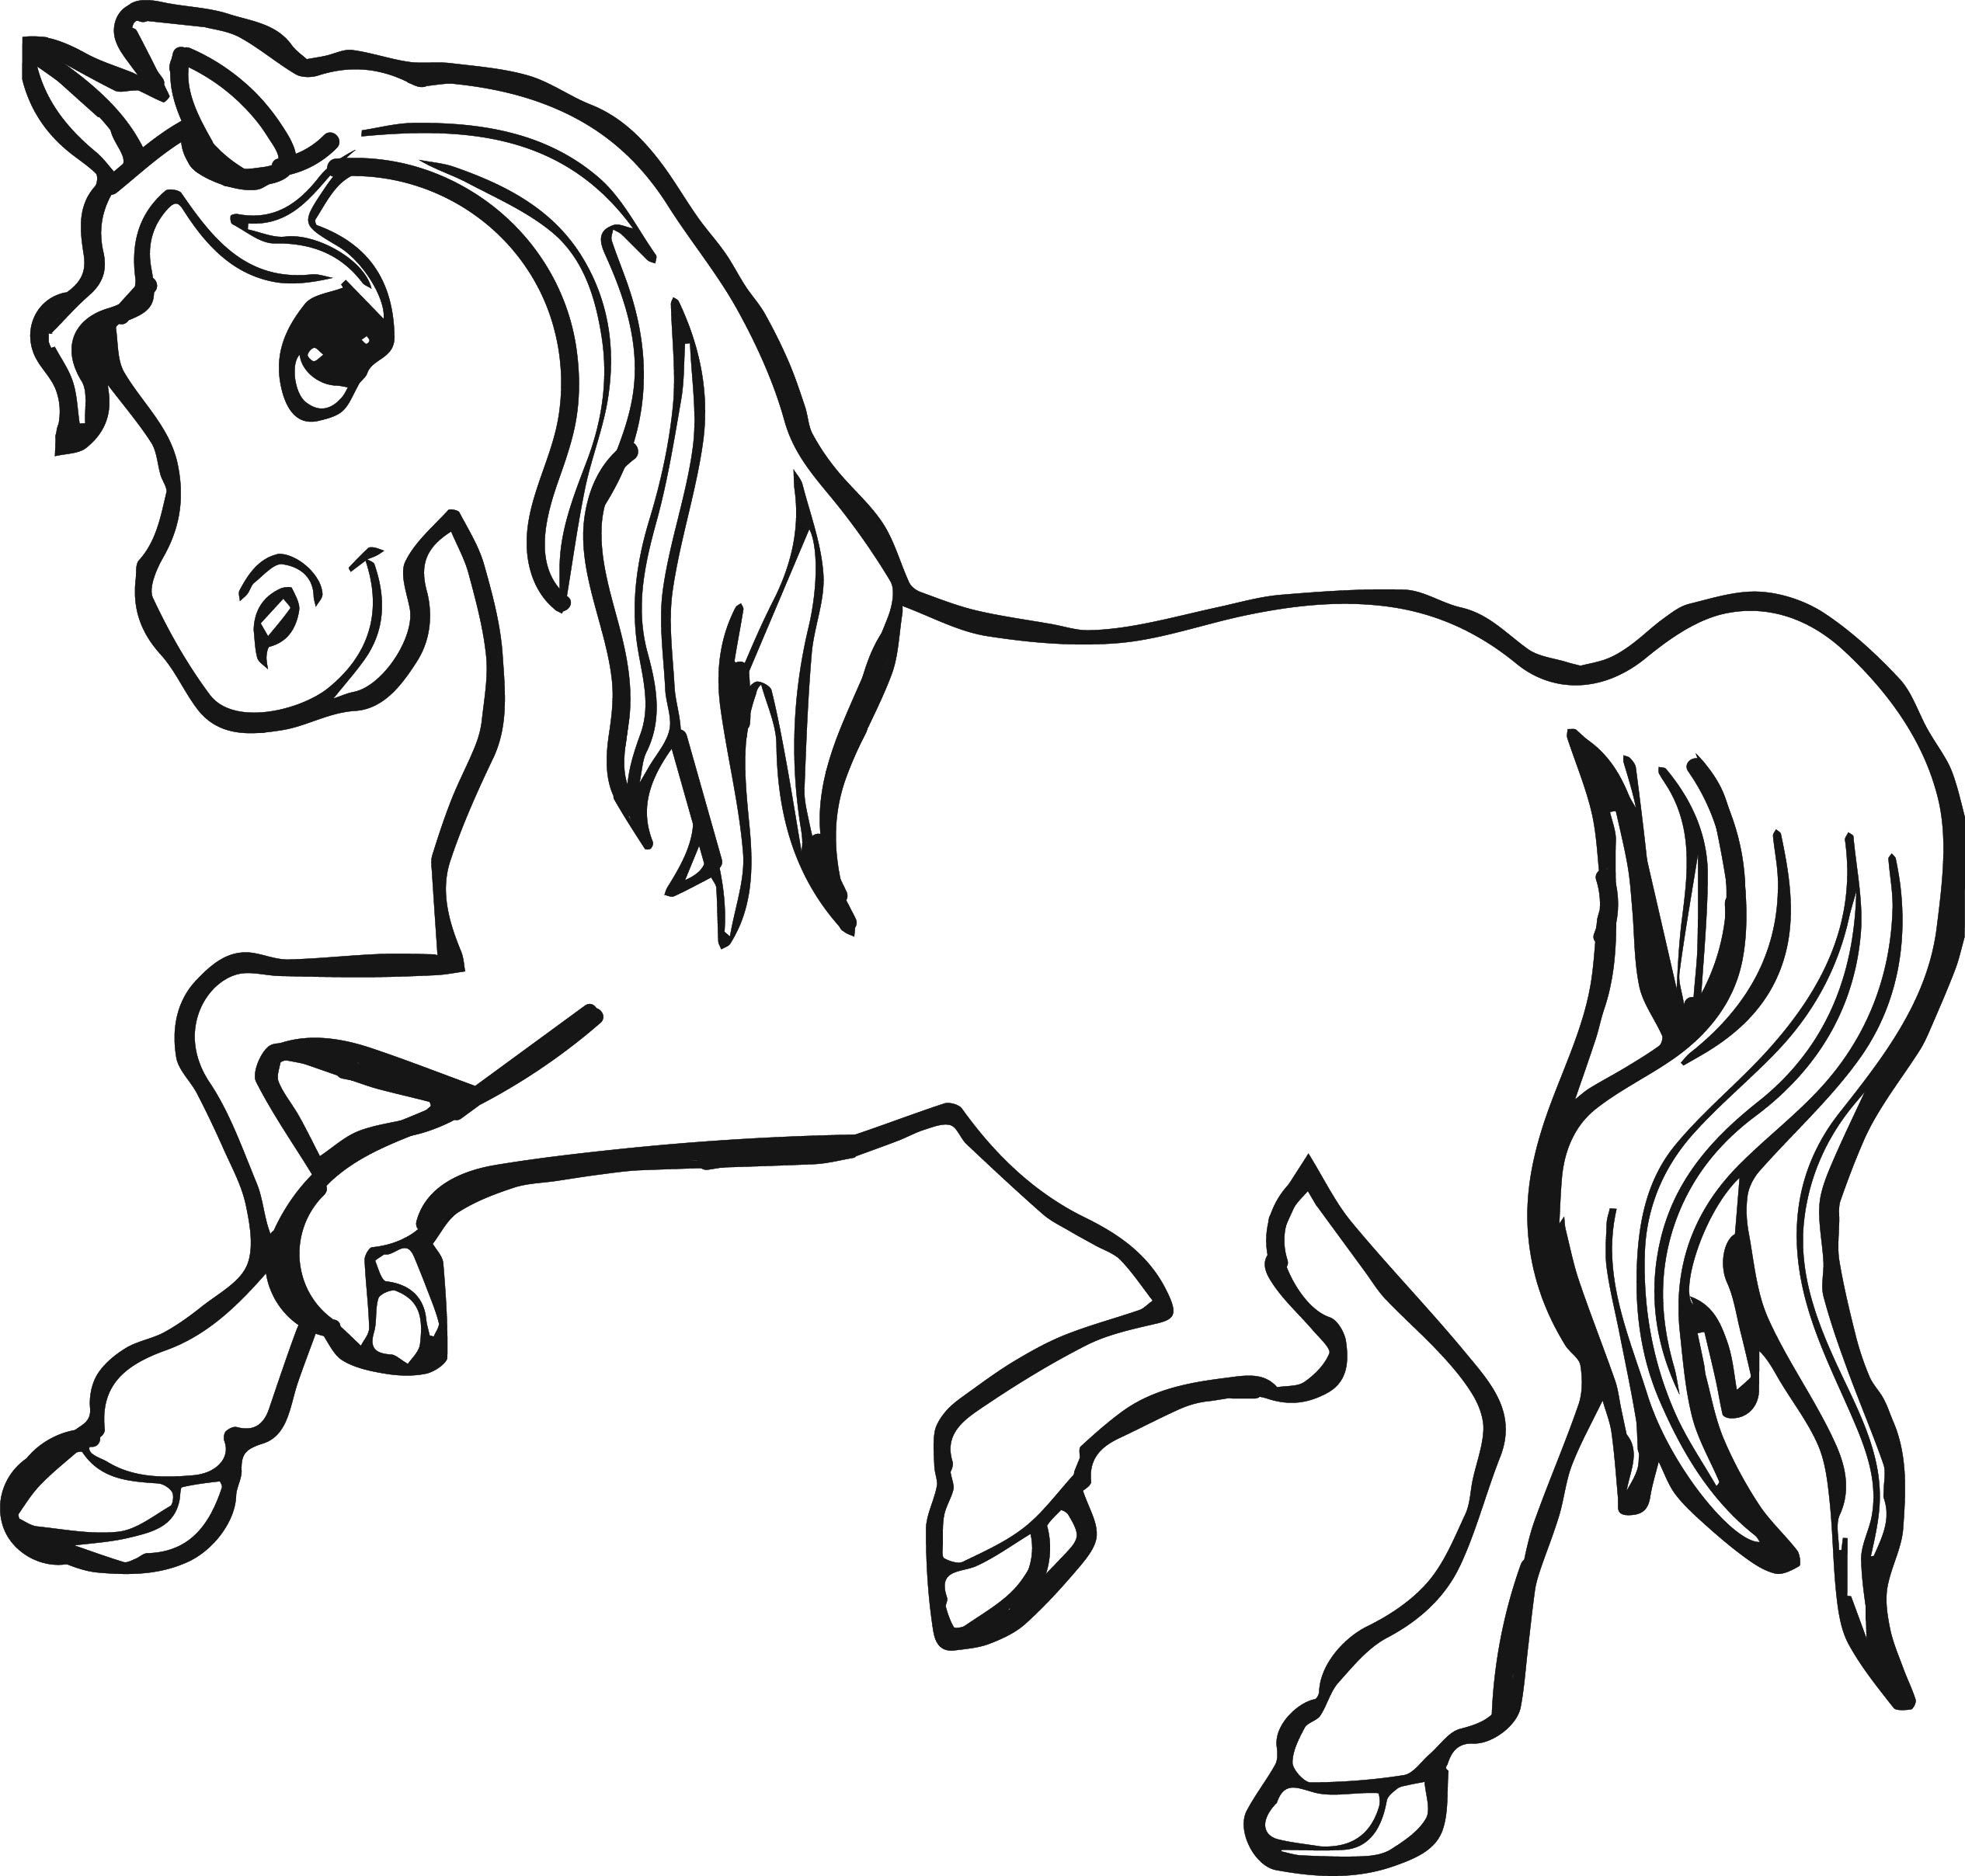 pictures of horses to colour in horse coloring pages for kids coloring pages for kids horses to of pictures in colour